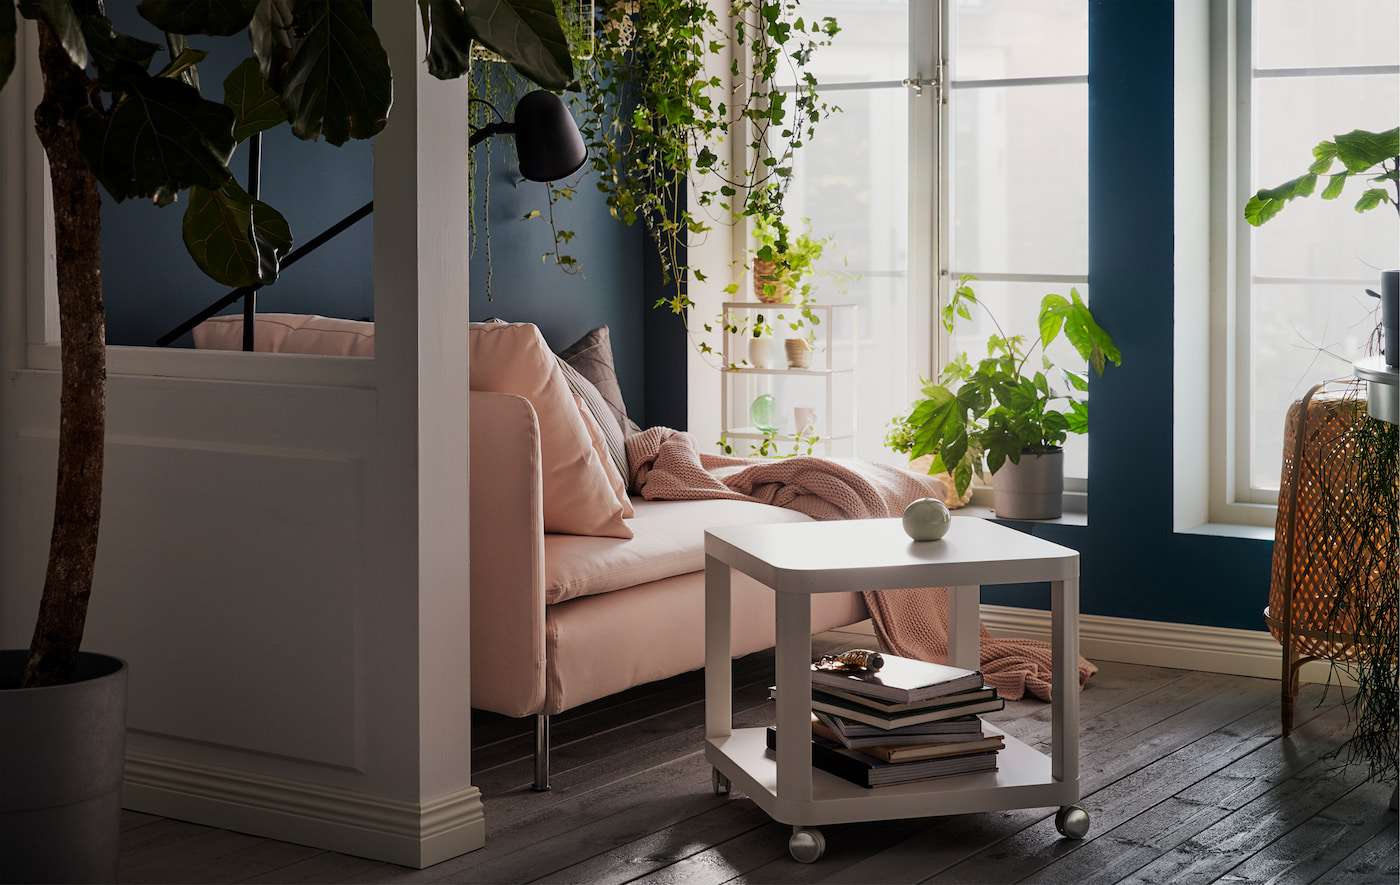 IKEA's Interior Design Leader Predicts These Will Be Fall's Biggest Home Trends